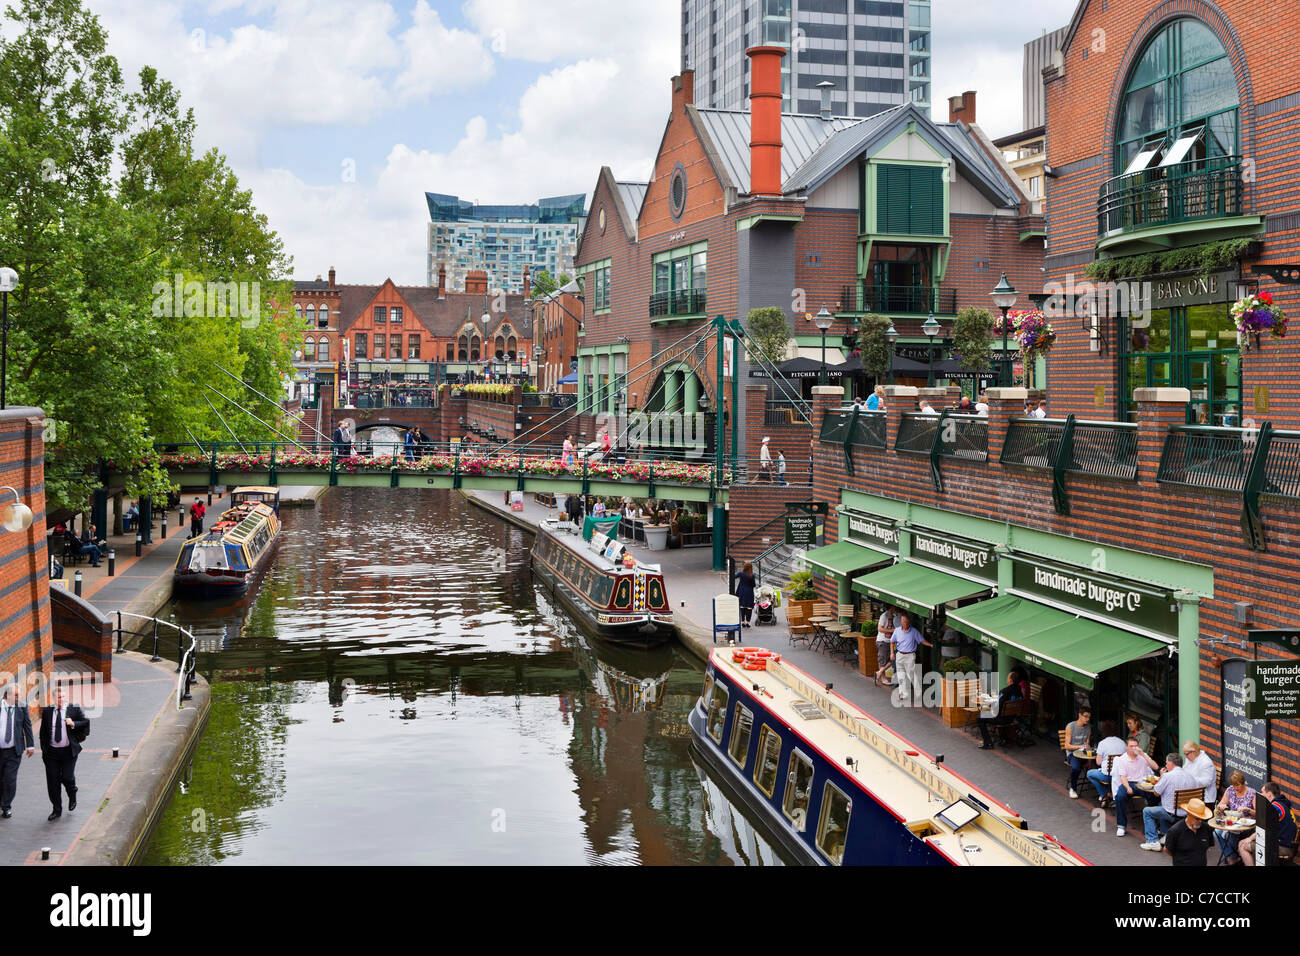 Eating Places In Birmingham City Centre